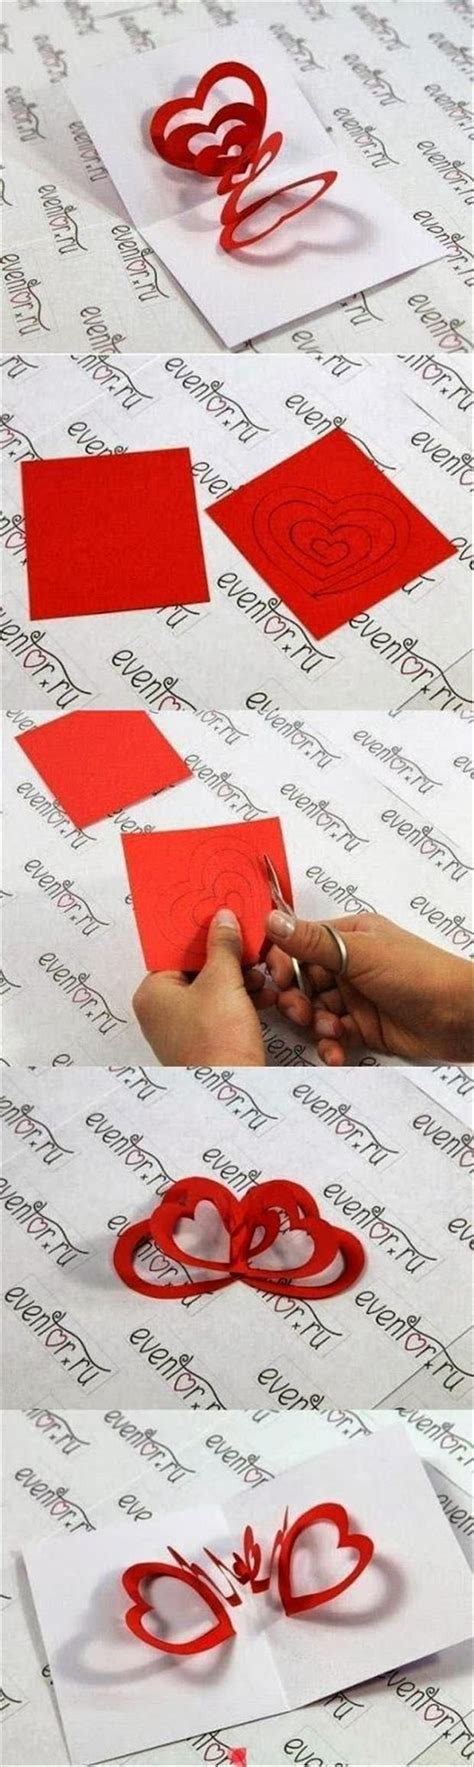 engineering valentines cards 30 best cards paper engineering images on